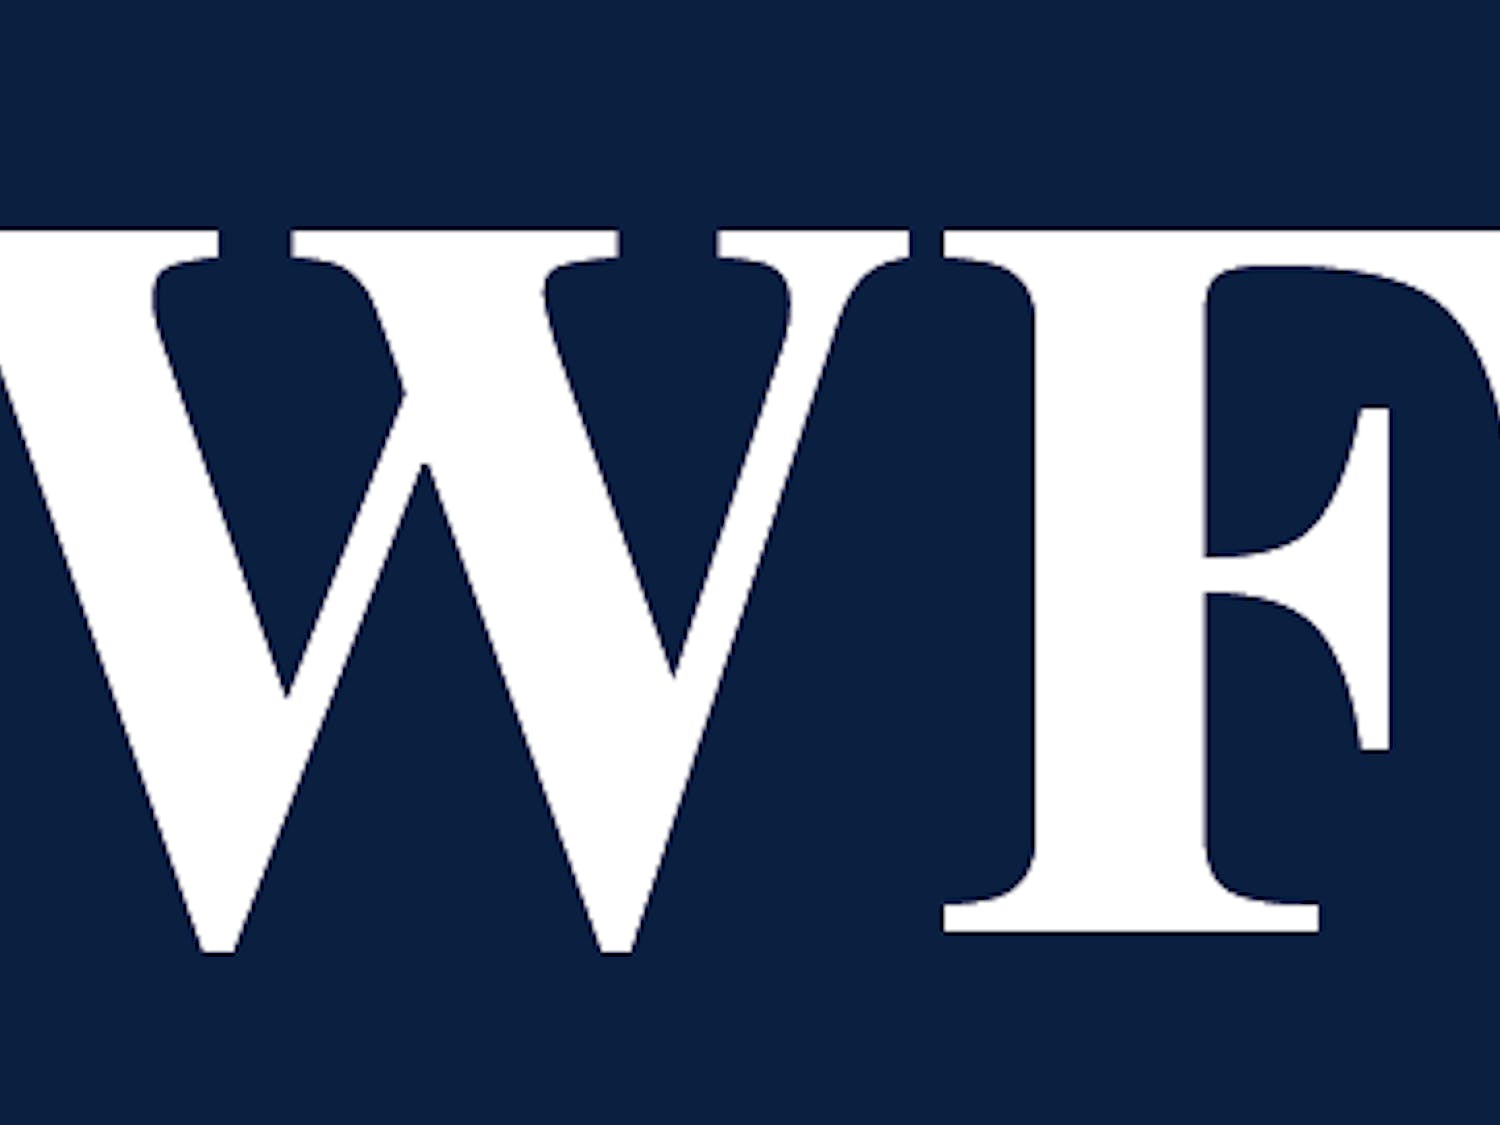 cropped-Logo-with-shade-of-Western-blue-e1517509114138